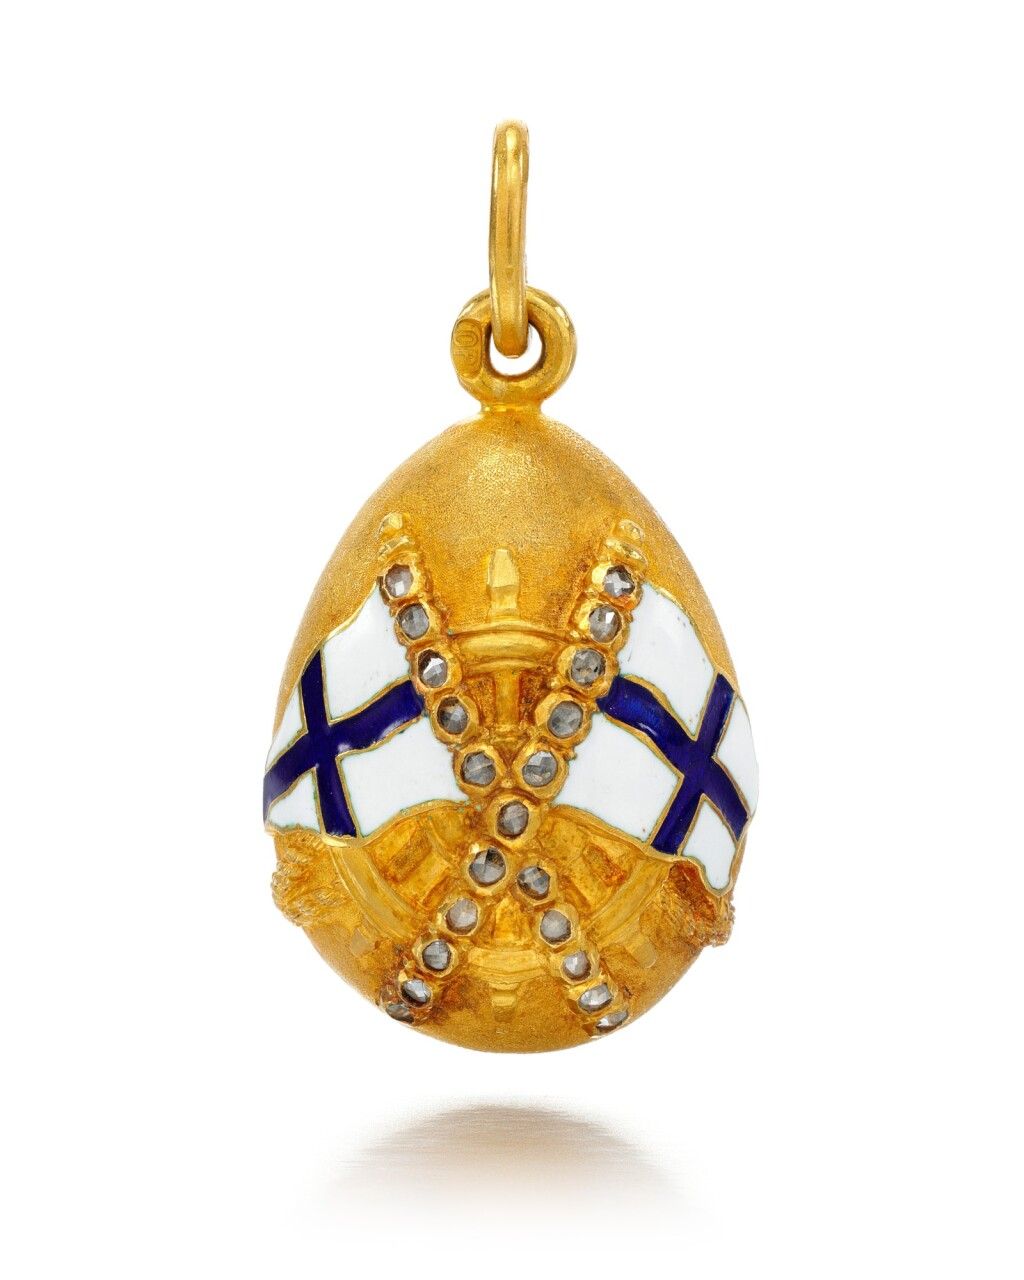 A JEWELLED GOLD AND GUILLOCHÉ ENAMEL EGG PENDANT, POSSIBLY FABERGÉ, ST PETERSBURG